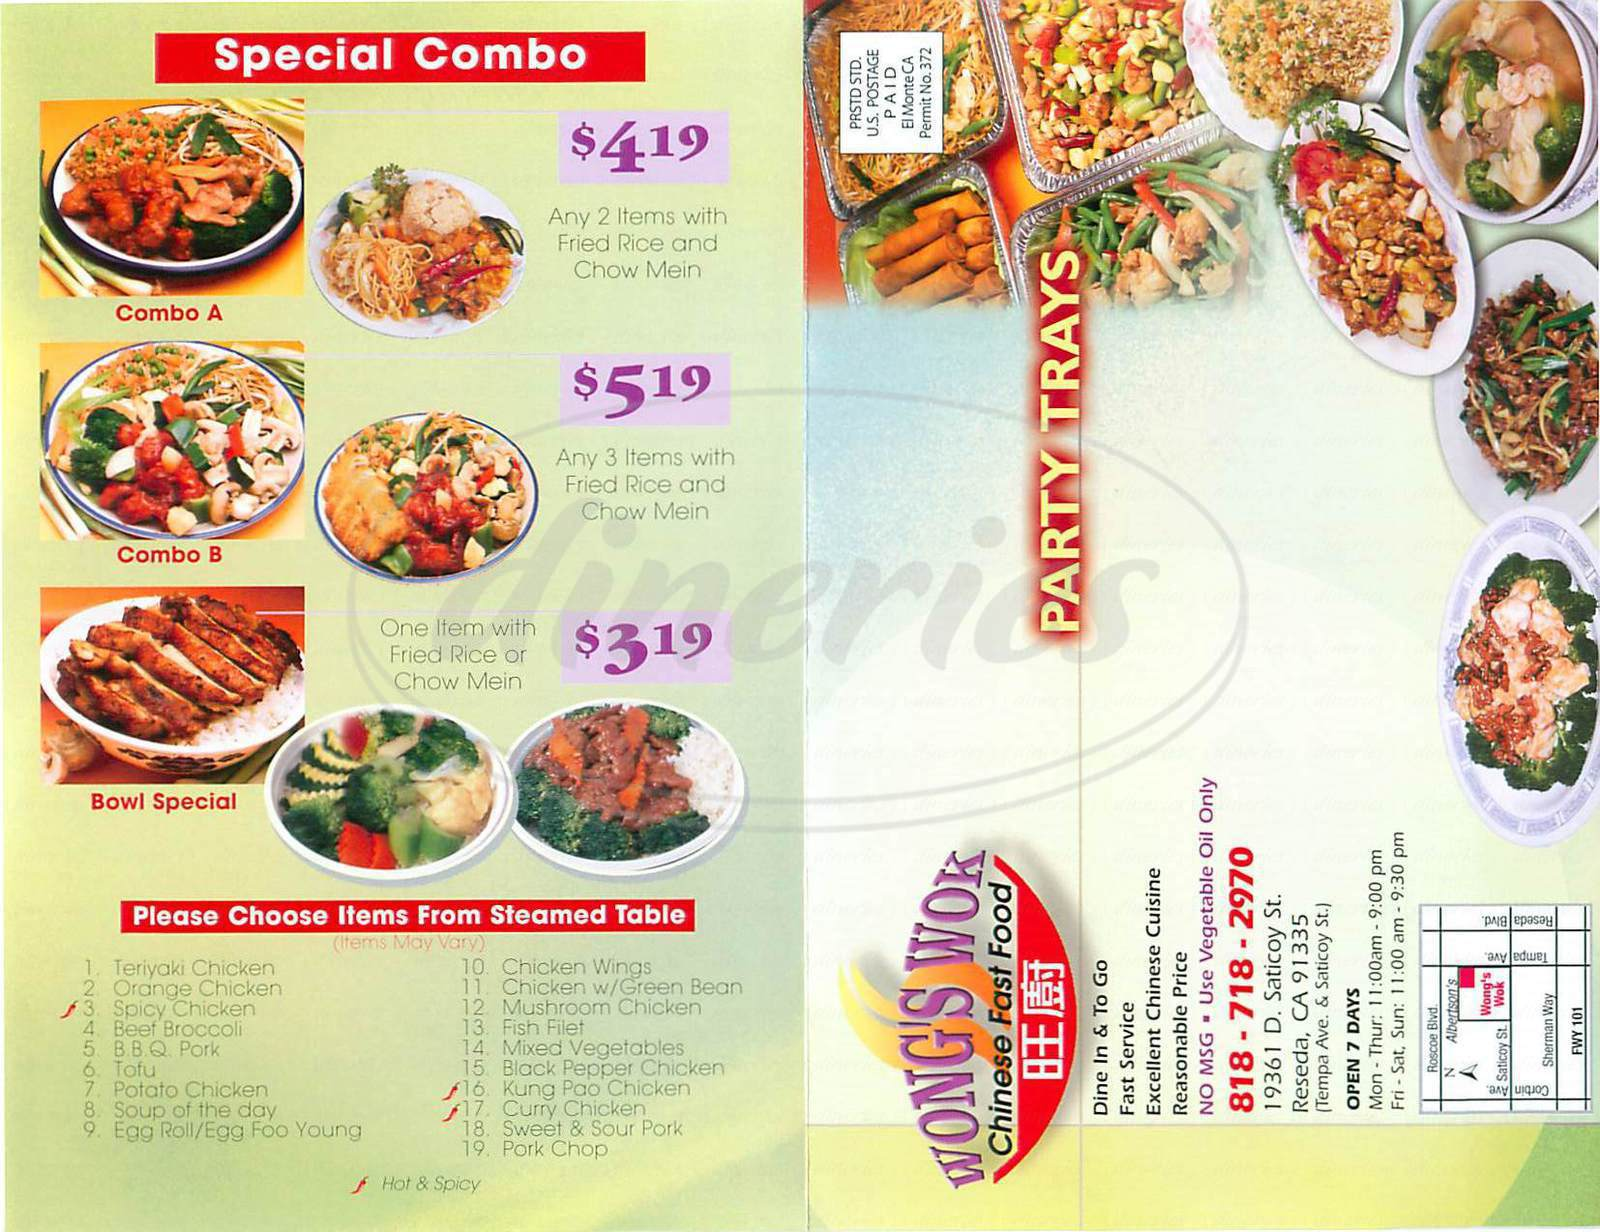 menu for Wongs Wok